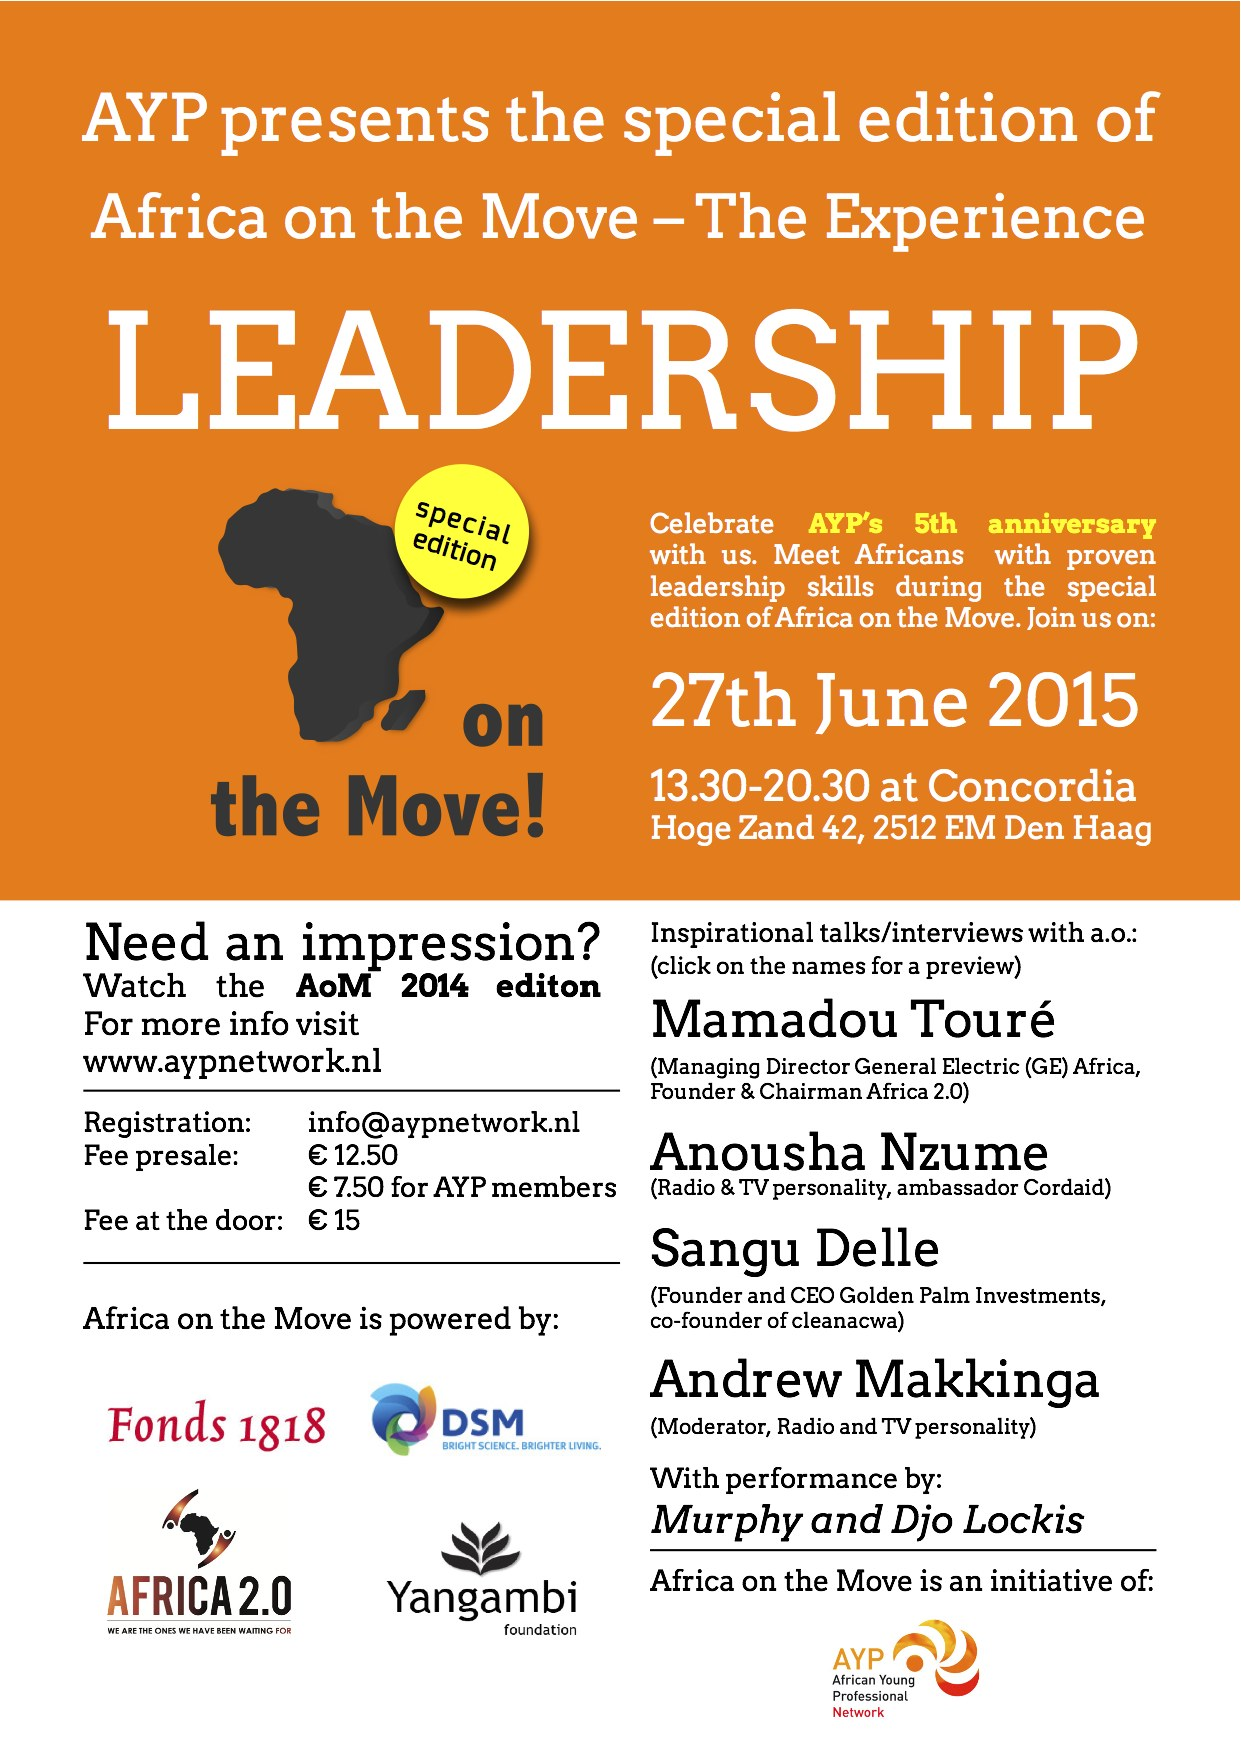 Africa on the Move - The Experience 2015